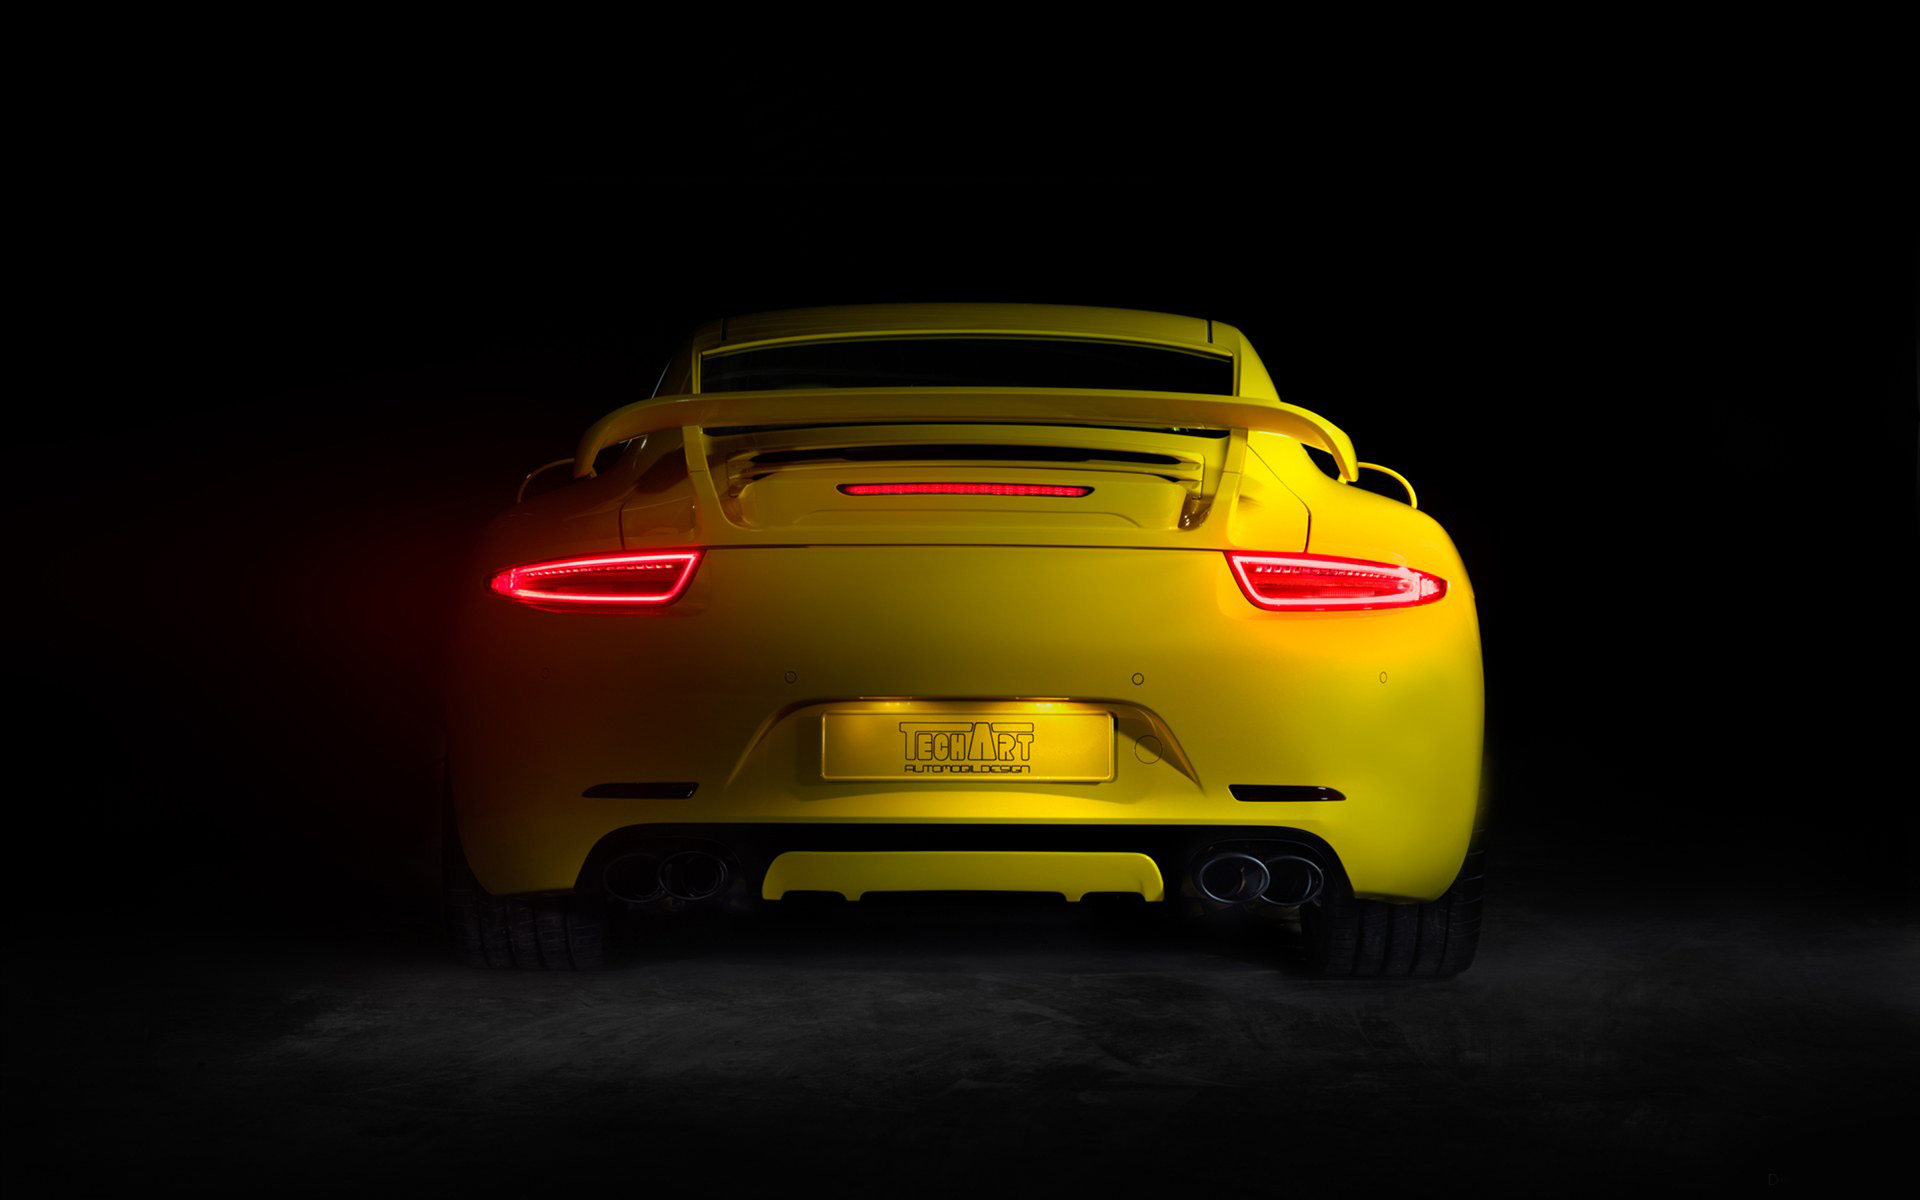 2012 TECHART Porsche 911 3 Wallpaper HD Car Wallpapers 1920x1200